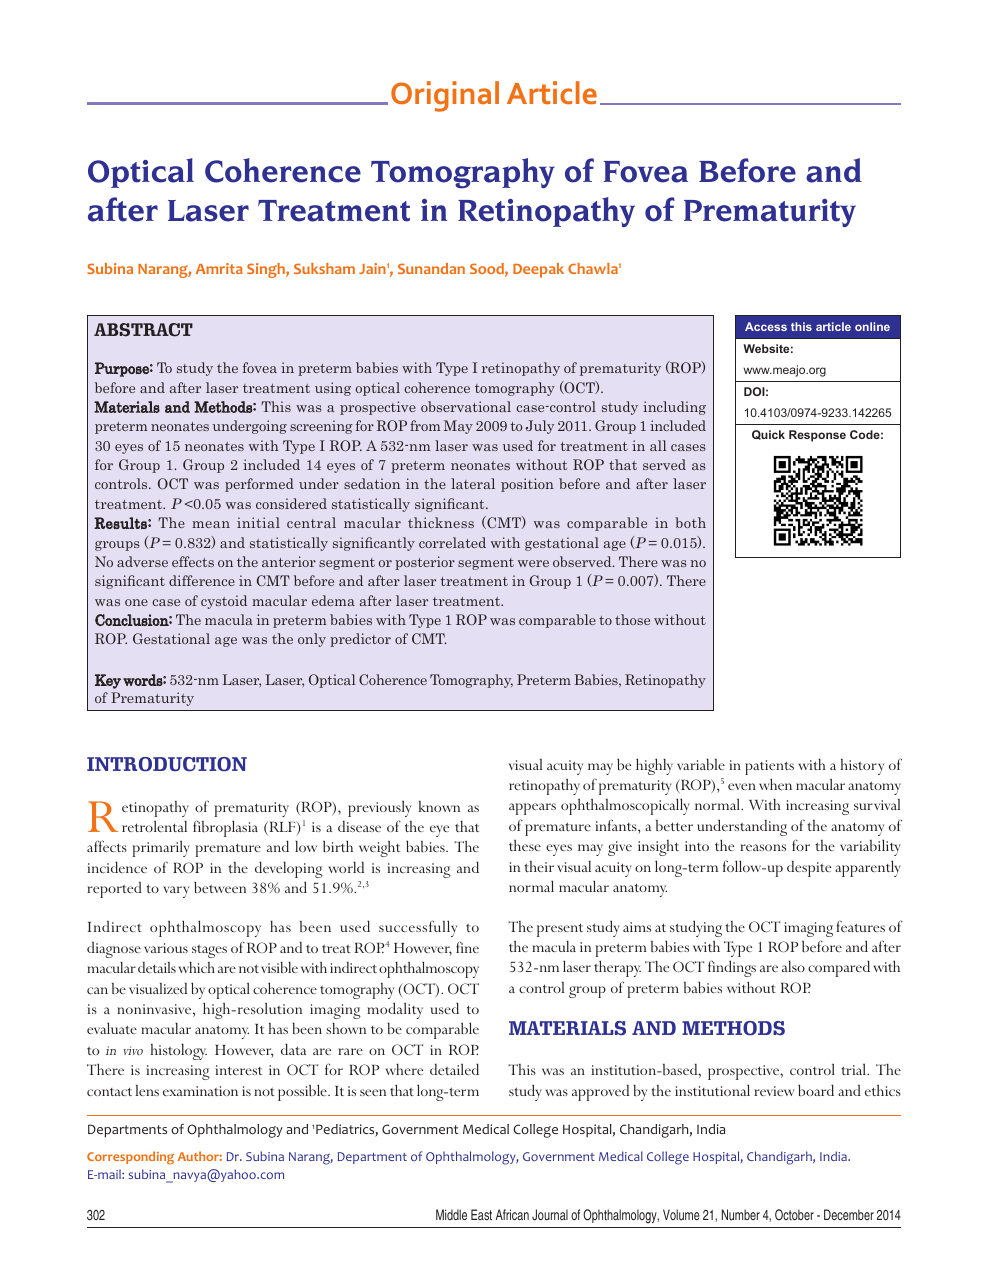 Optical coherence tomography of fovea before and after laser